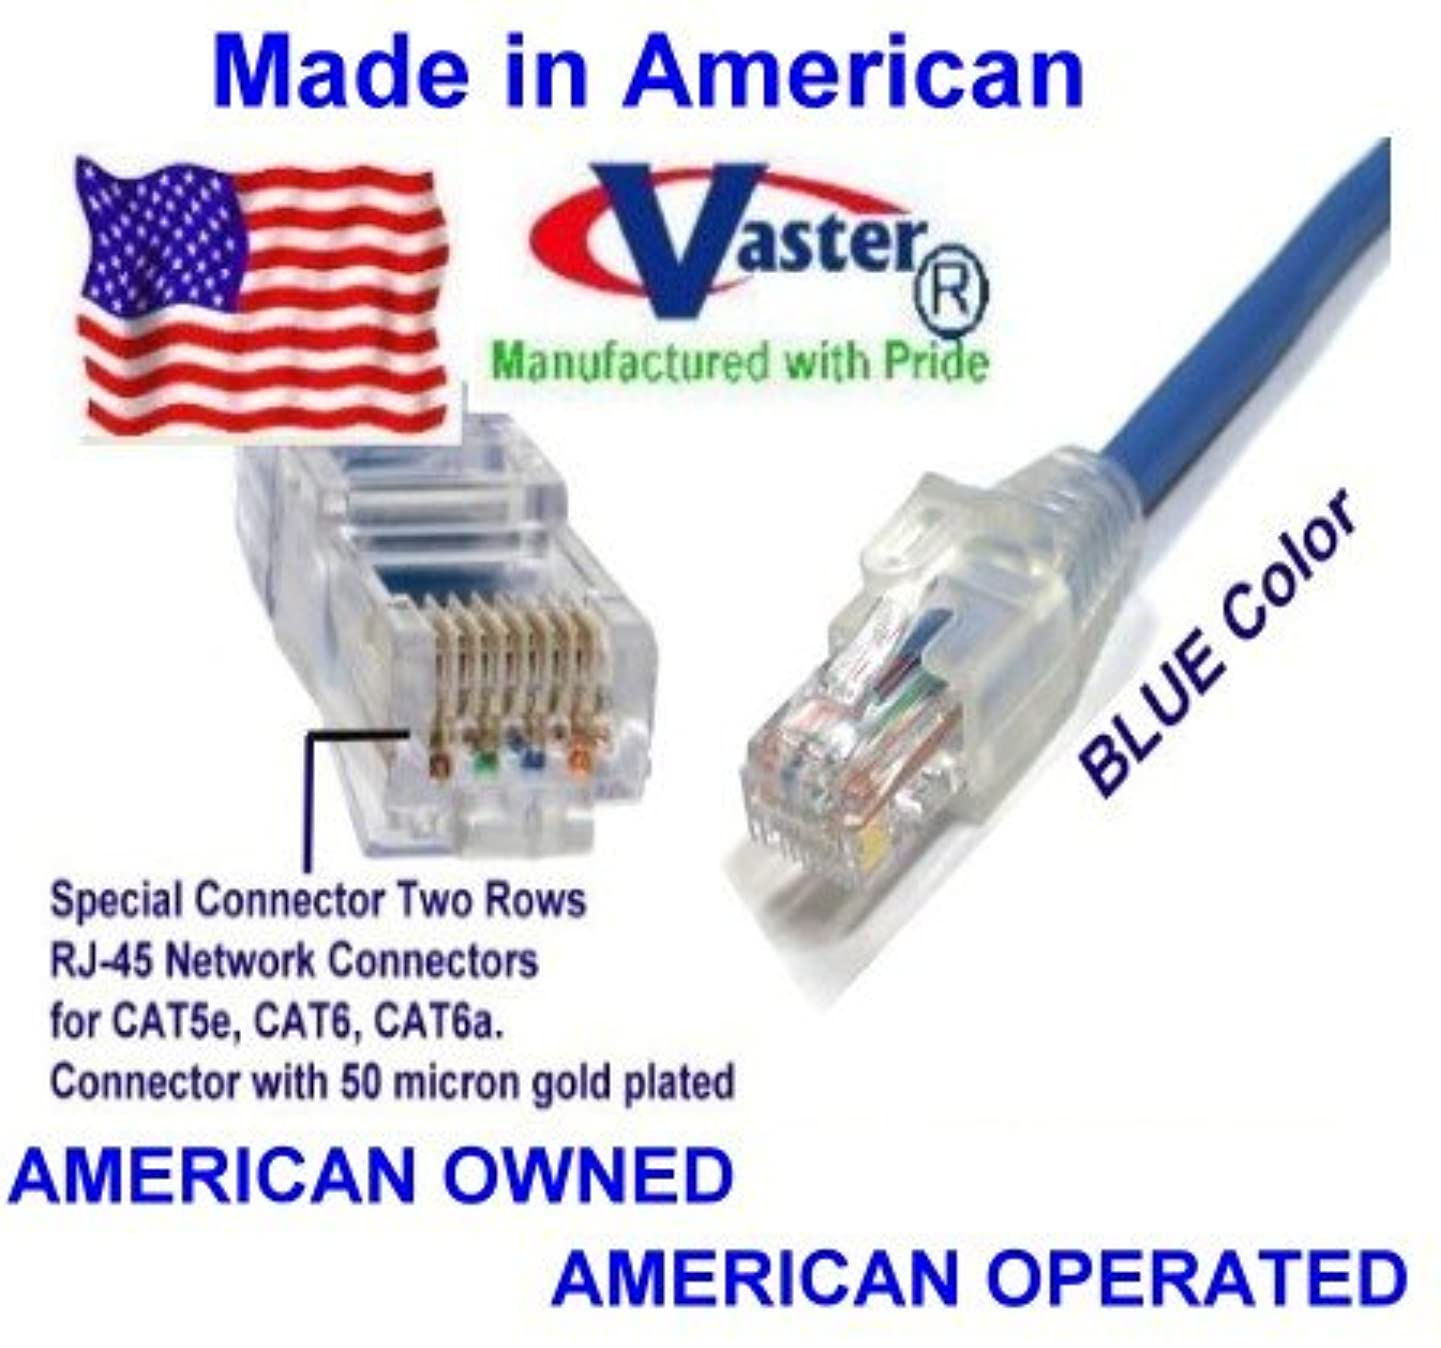 SuperEcable - USA-0670 - 12 Ft UTP Cat5e - Made in USA - BLUE – UL 24Awg Pure Copper – Ethernet Network Patch Cable